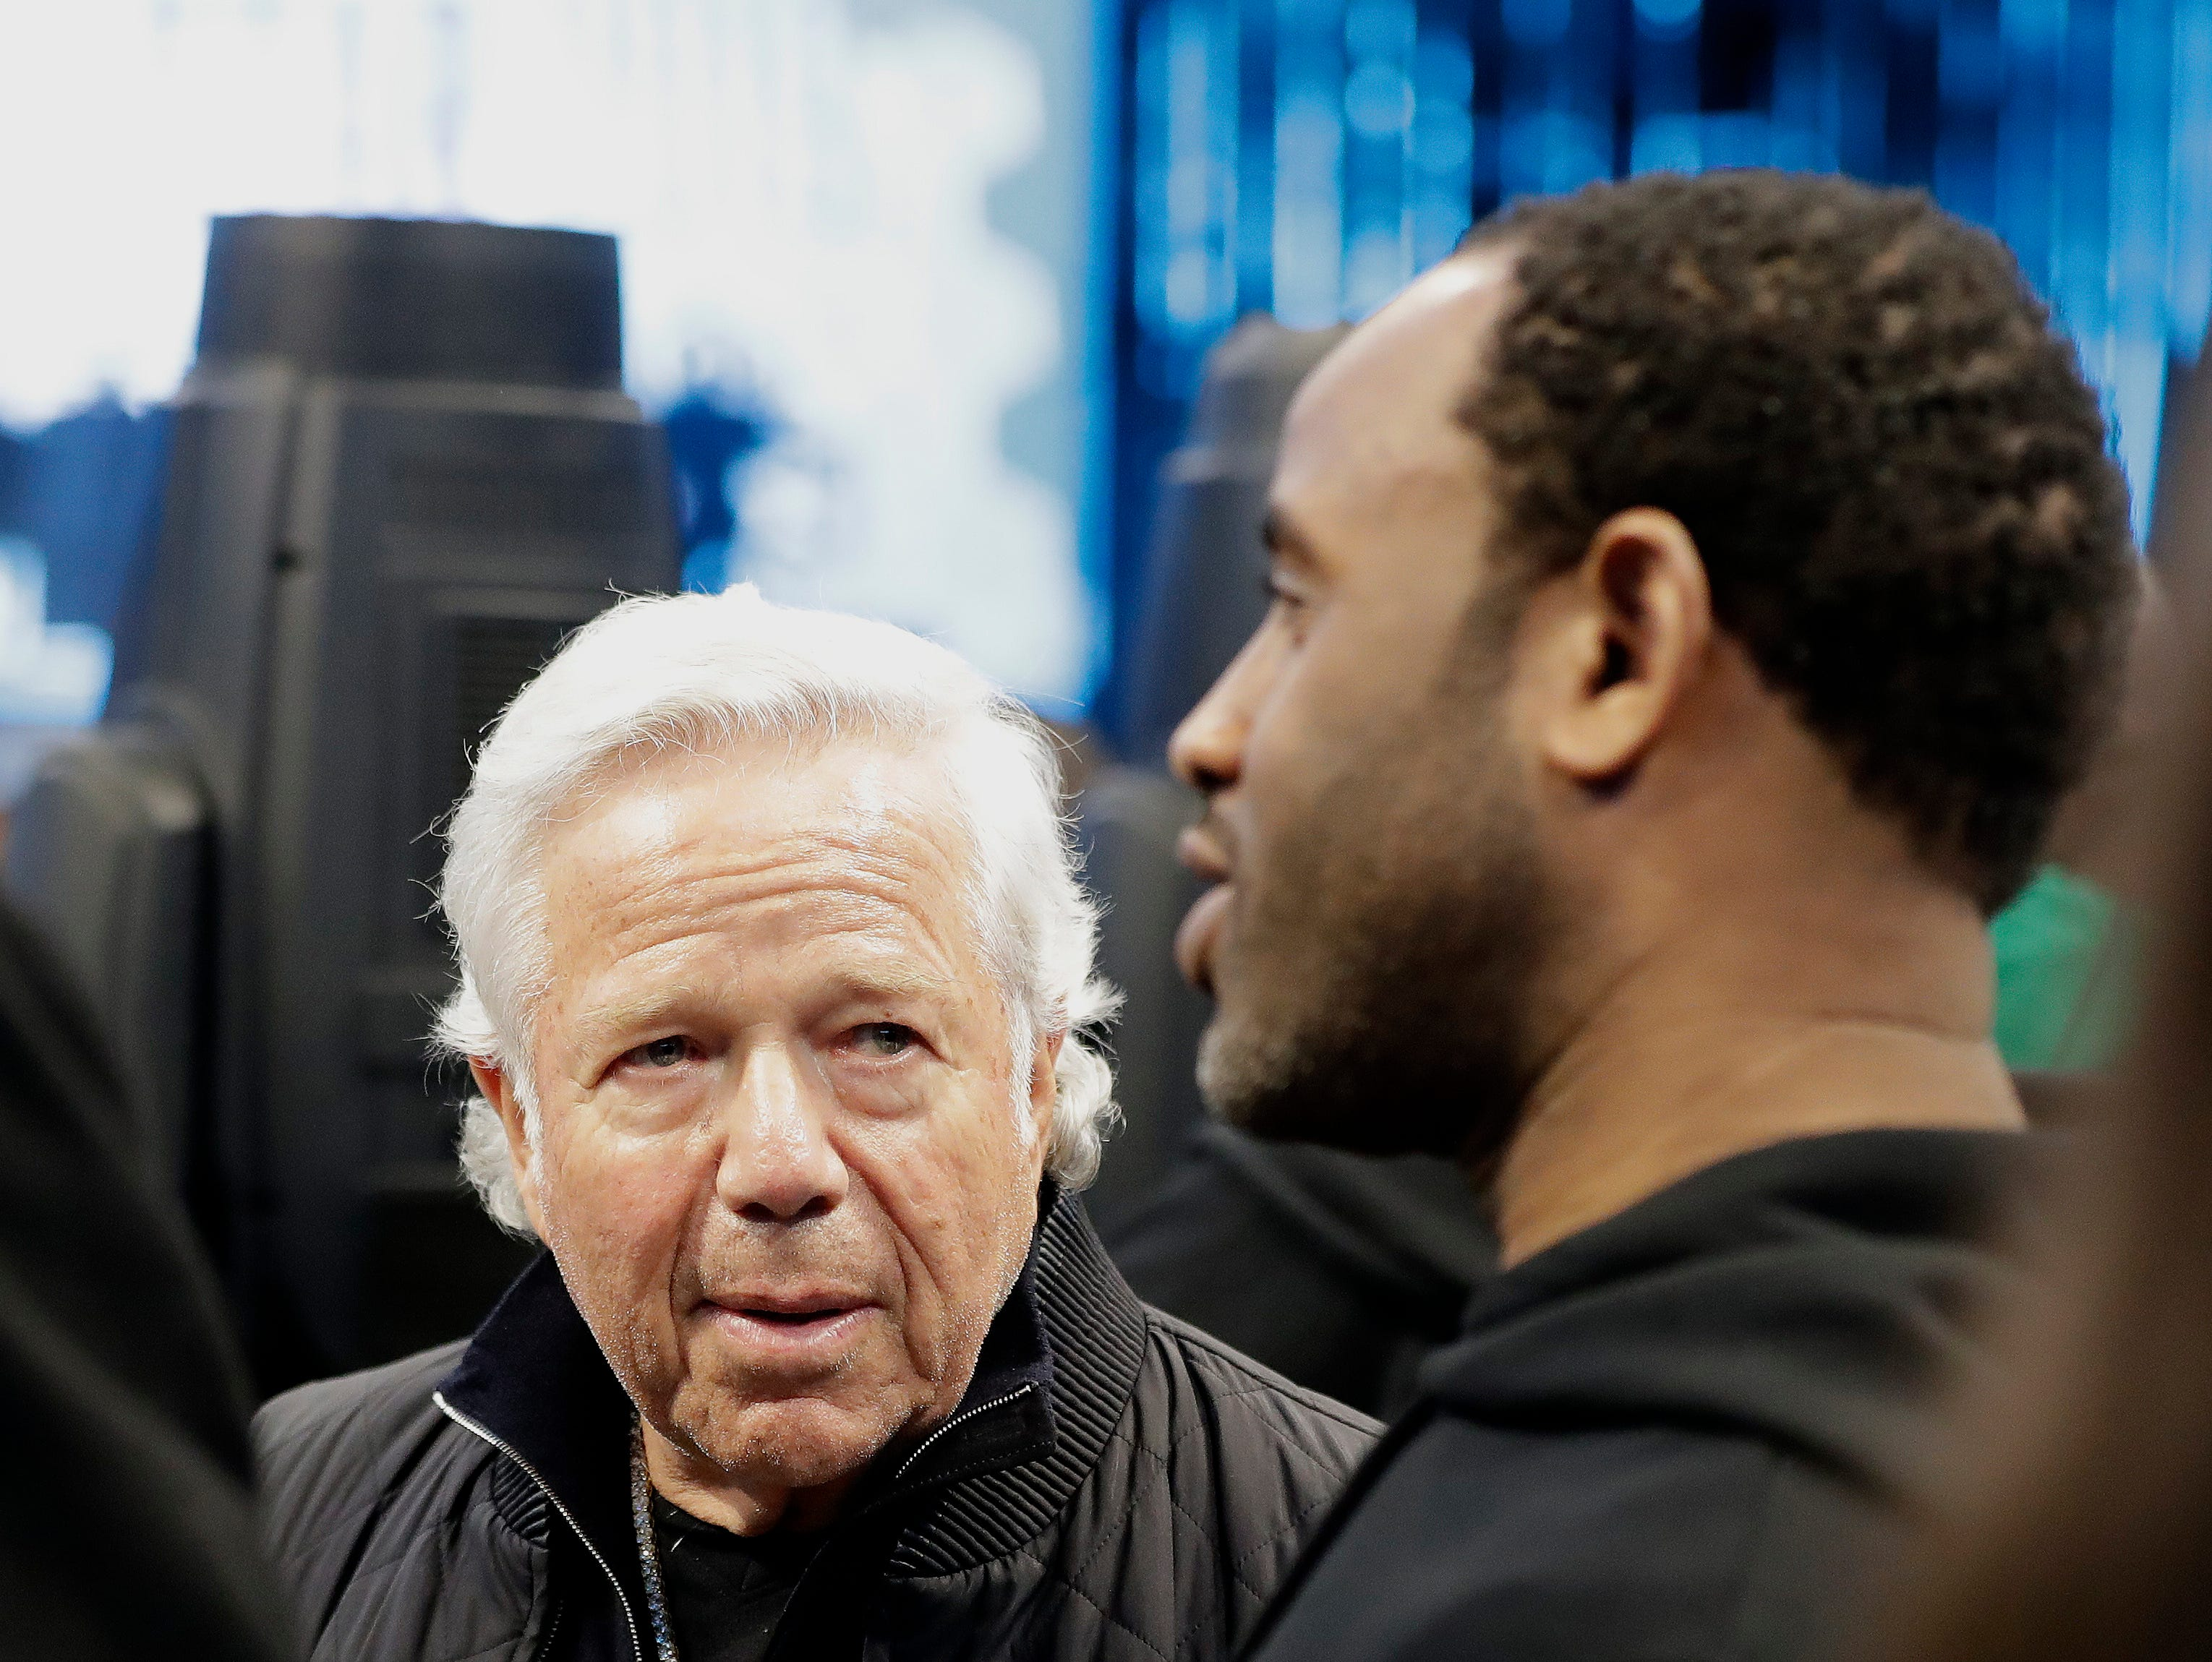 New England Patriots Owner Robert Kraft speaks to fans during the first half of an NBA All-Star basketball game, Sunday, Feb. 17, 2019, in Charlotte, N.C.